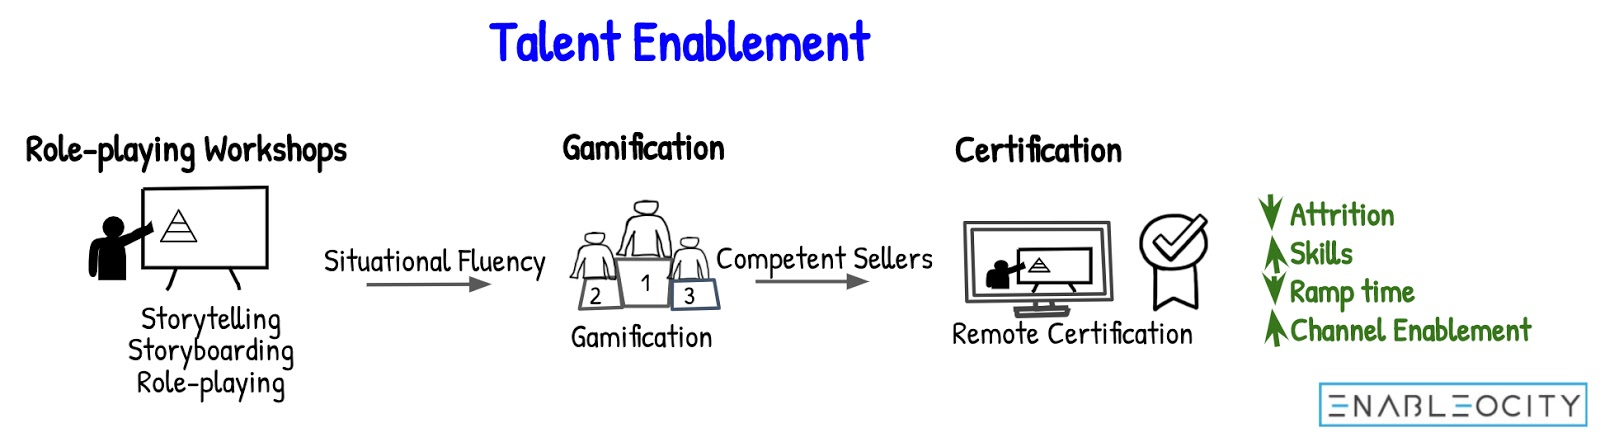 Talent enablement